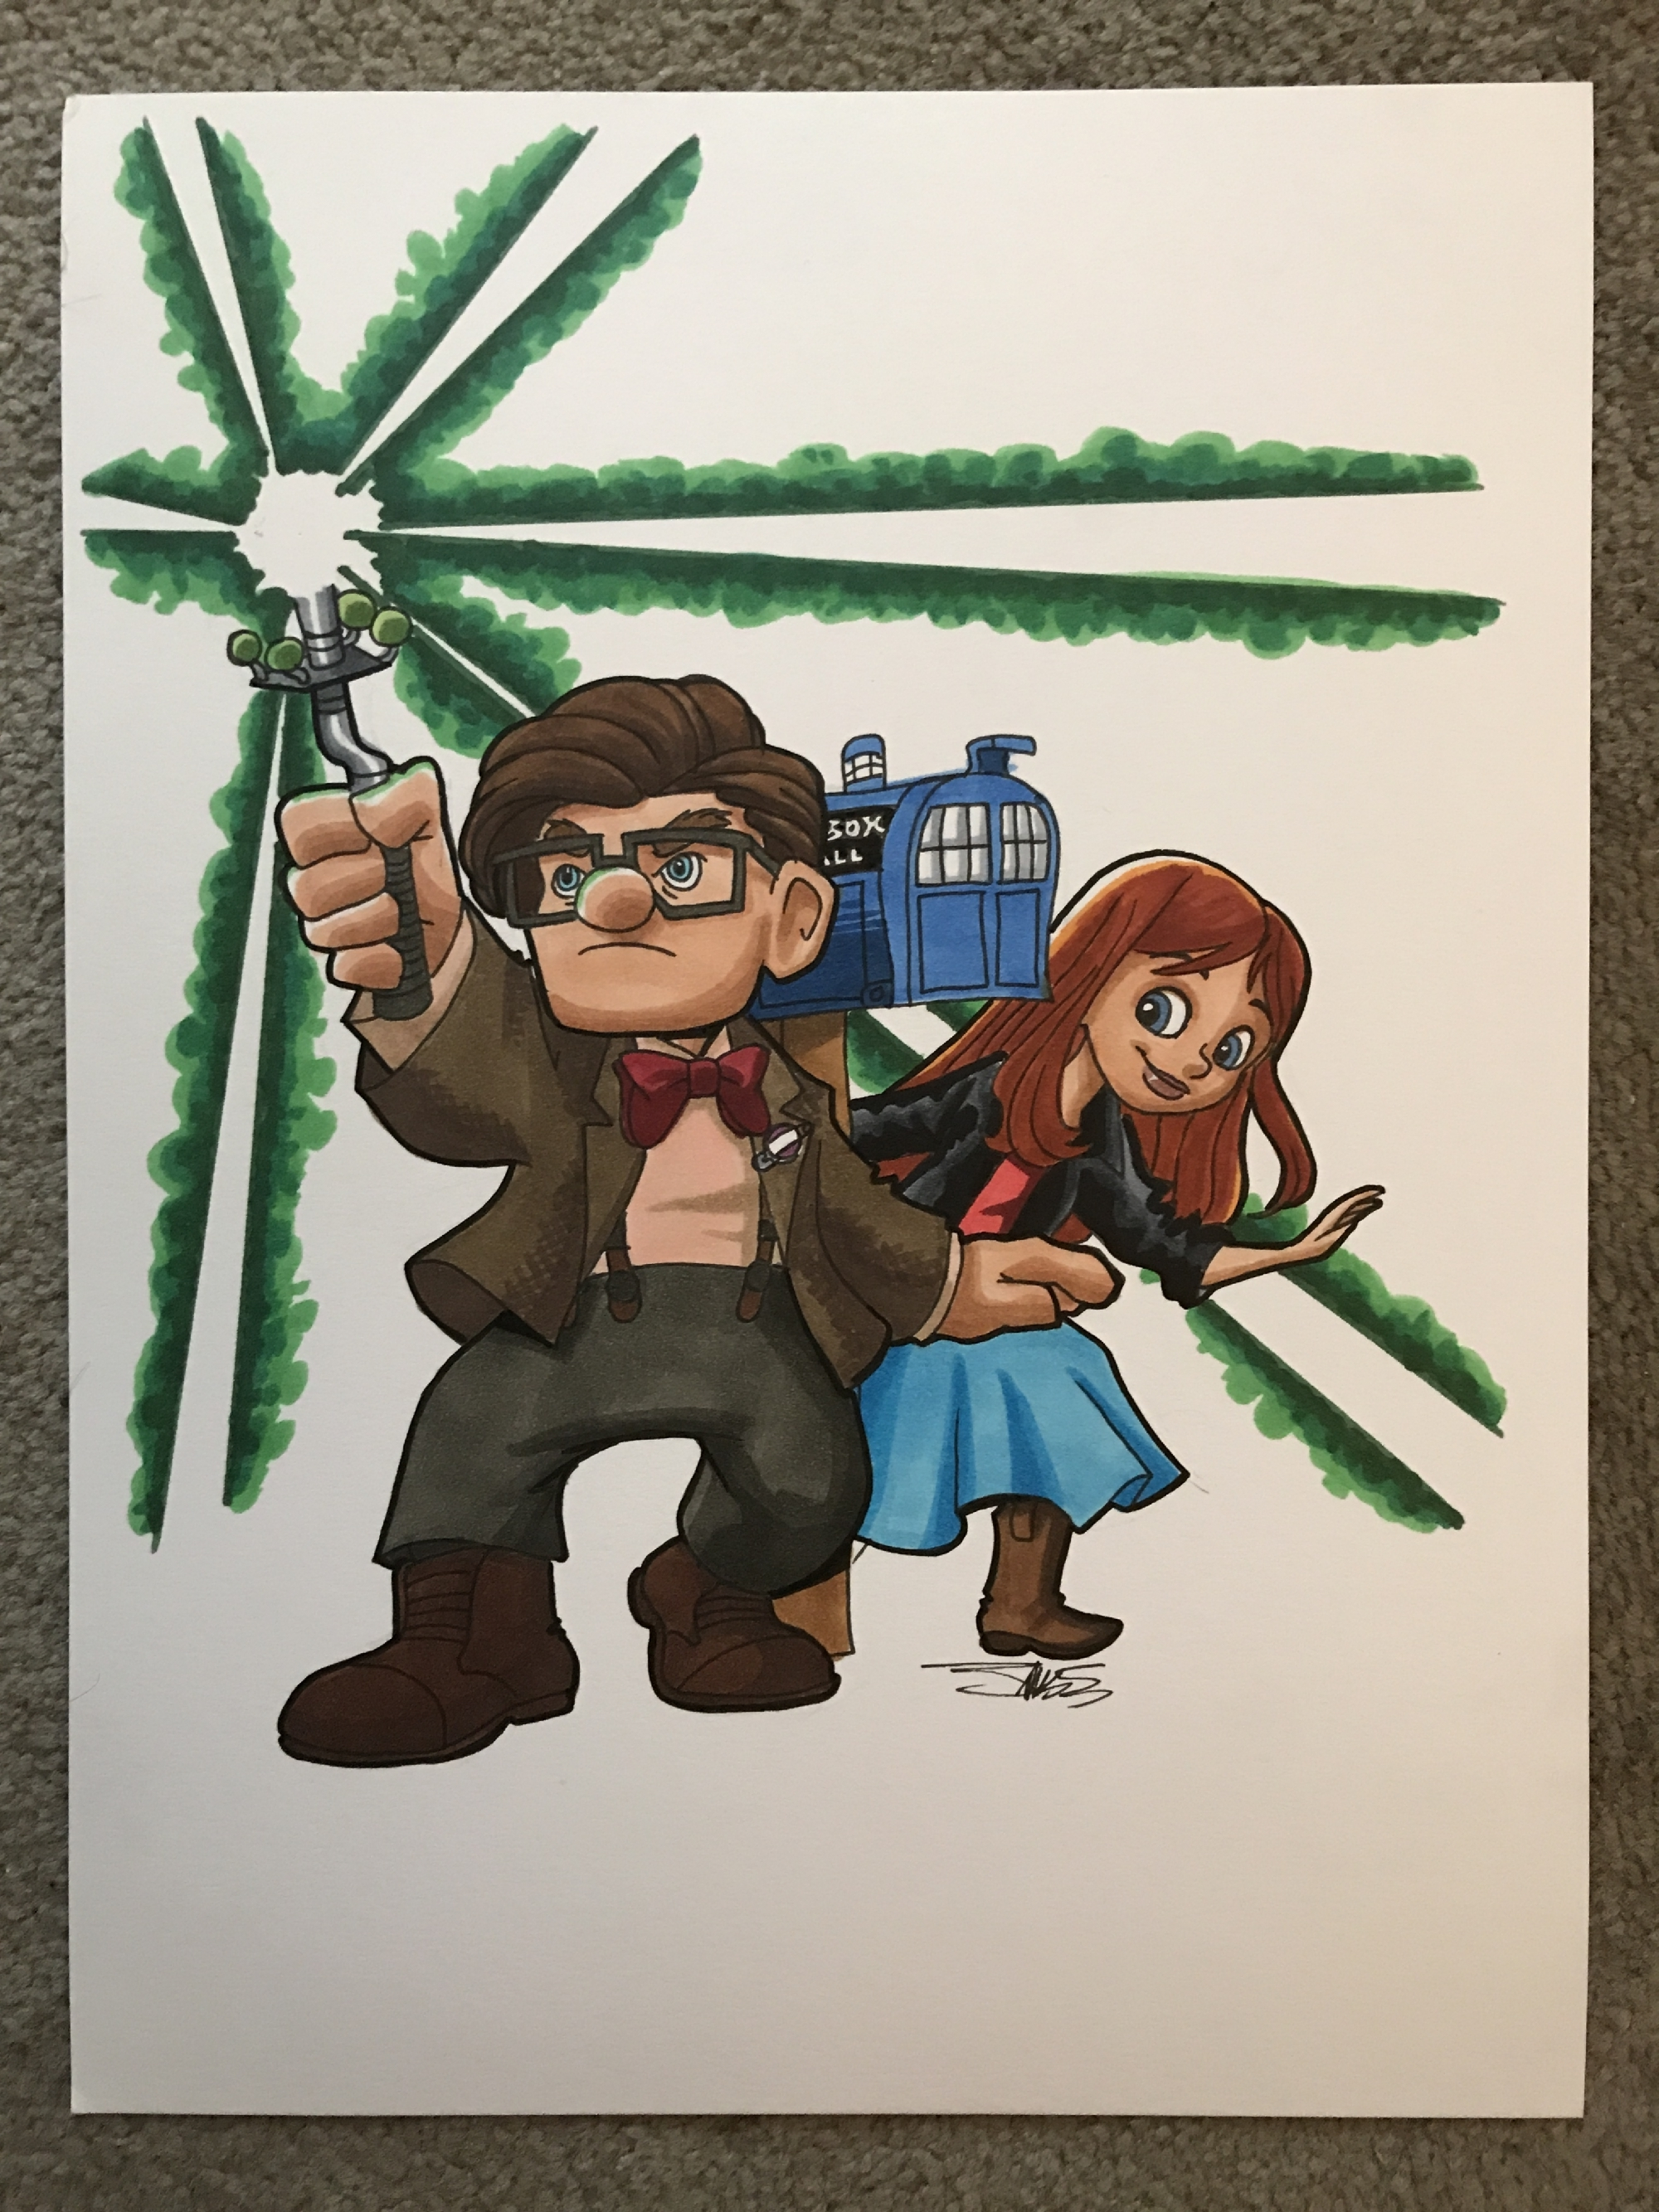 Carl Ellie As The Eleventh Doctor Amy Up Doctor Who Mashup By James Silvani In Eric Peters S Doctor Who Comic Art Gallery Room